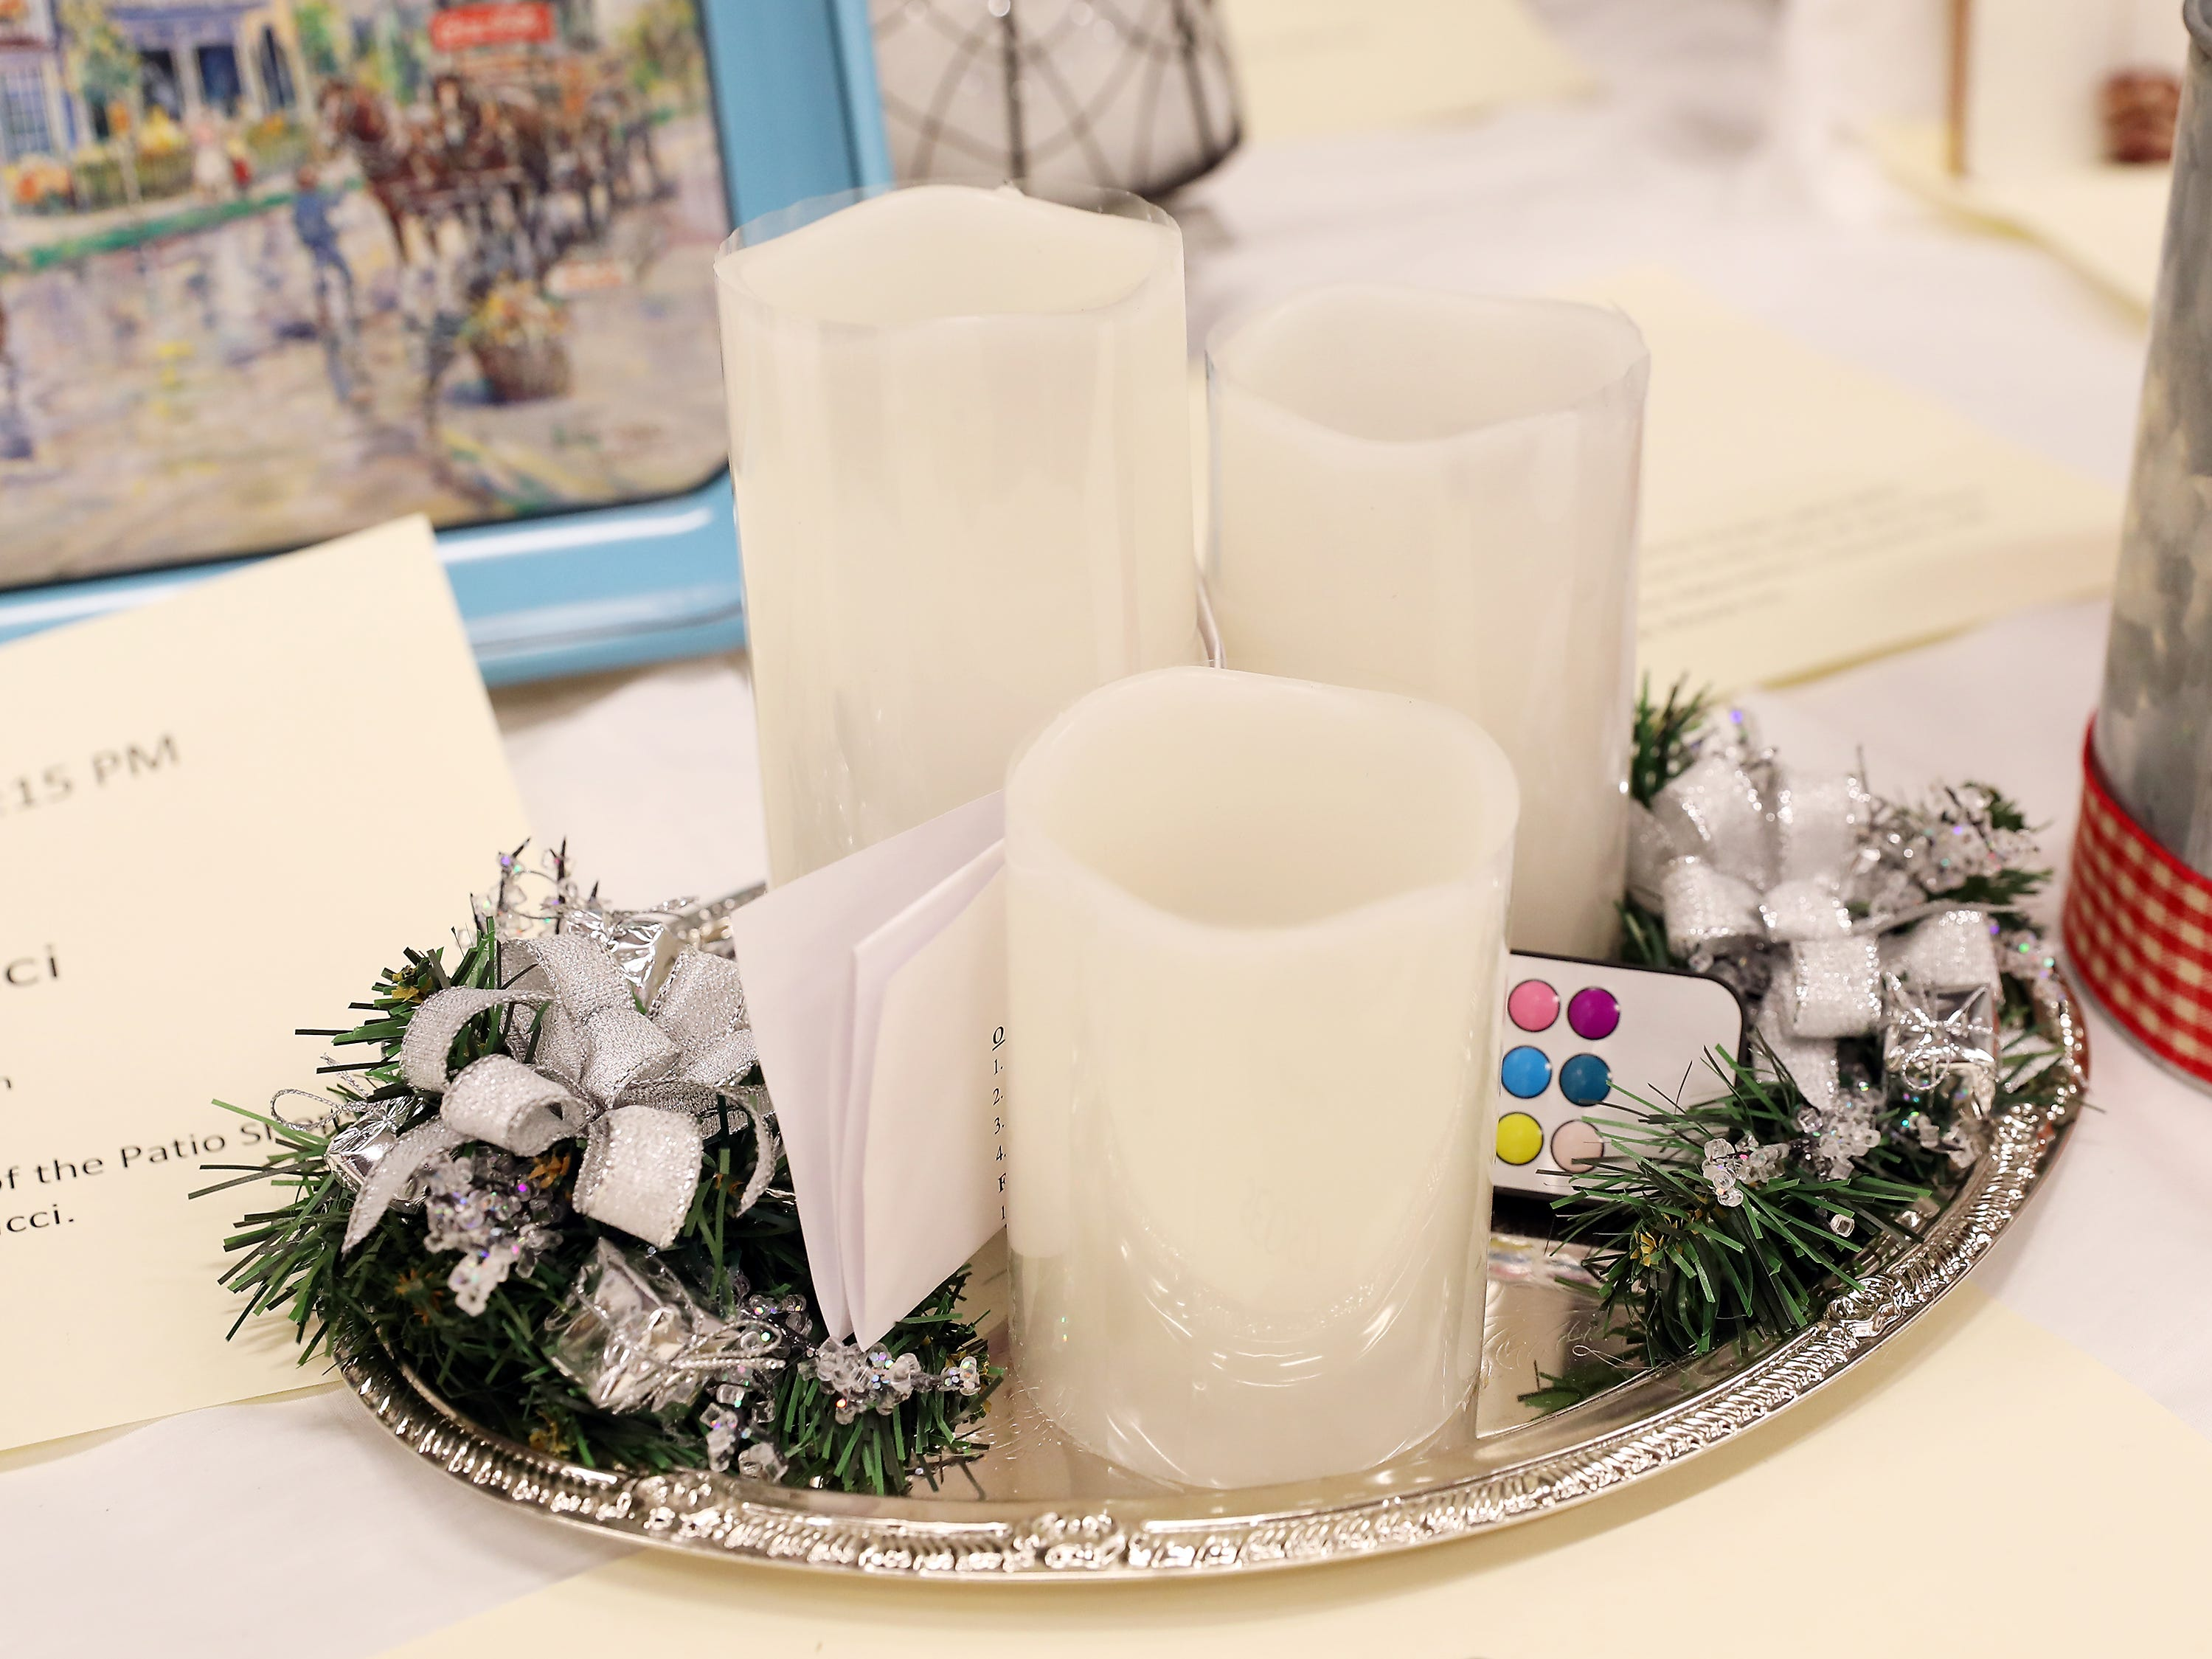 71	11:30 AM	SEOSO	Centerpiece	Winter Glow	3 battery operated candles on timers sitting on a silver tray with packages, pine and ribbon		SEOSO CD and 2 season tickets for the 2019 SEOSO season.